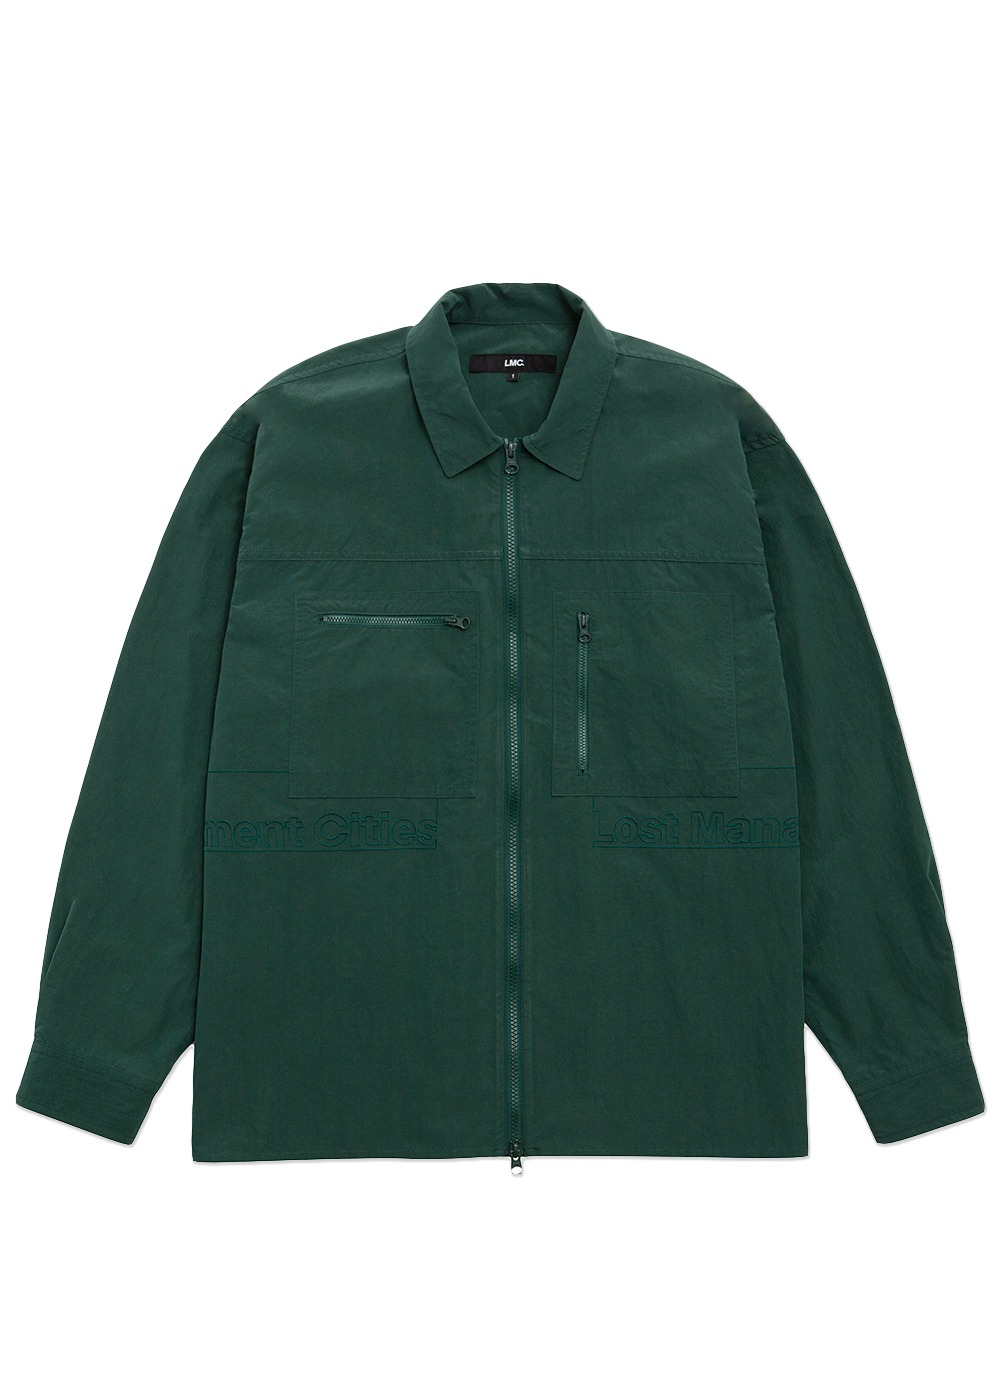 LMC FULL ZIP WORK SHIRT green